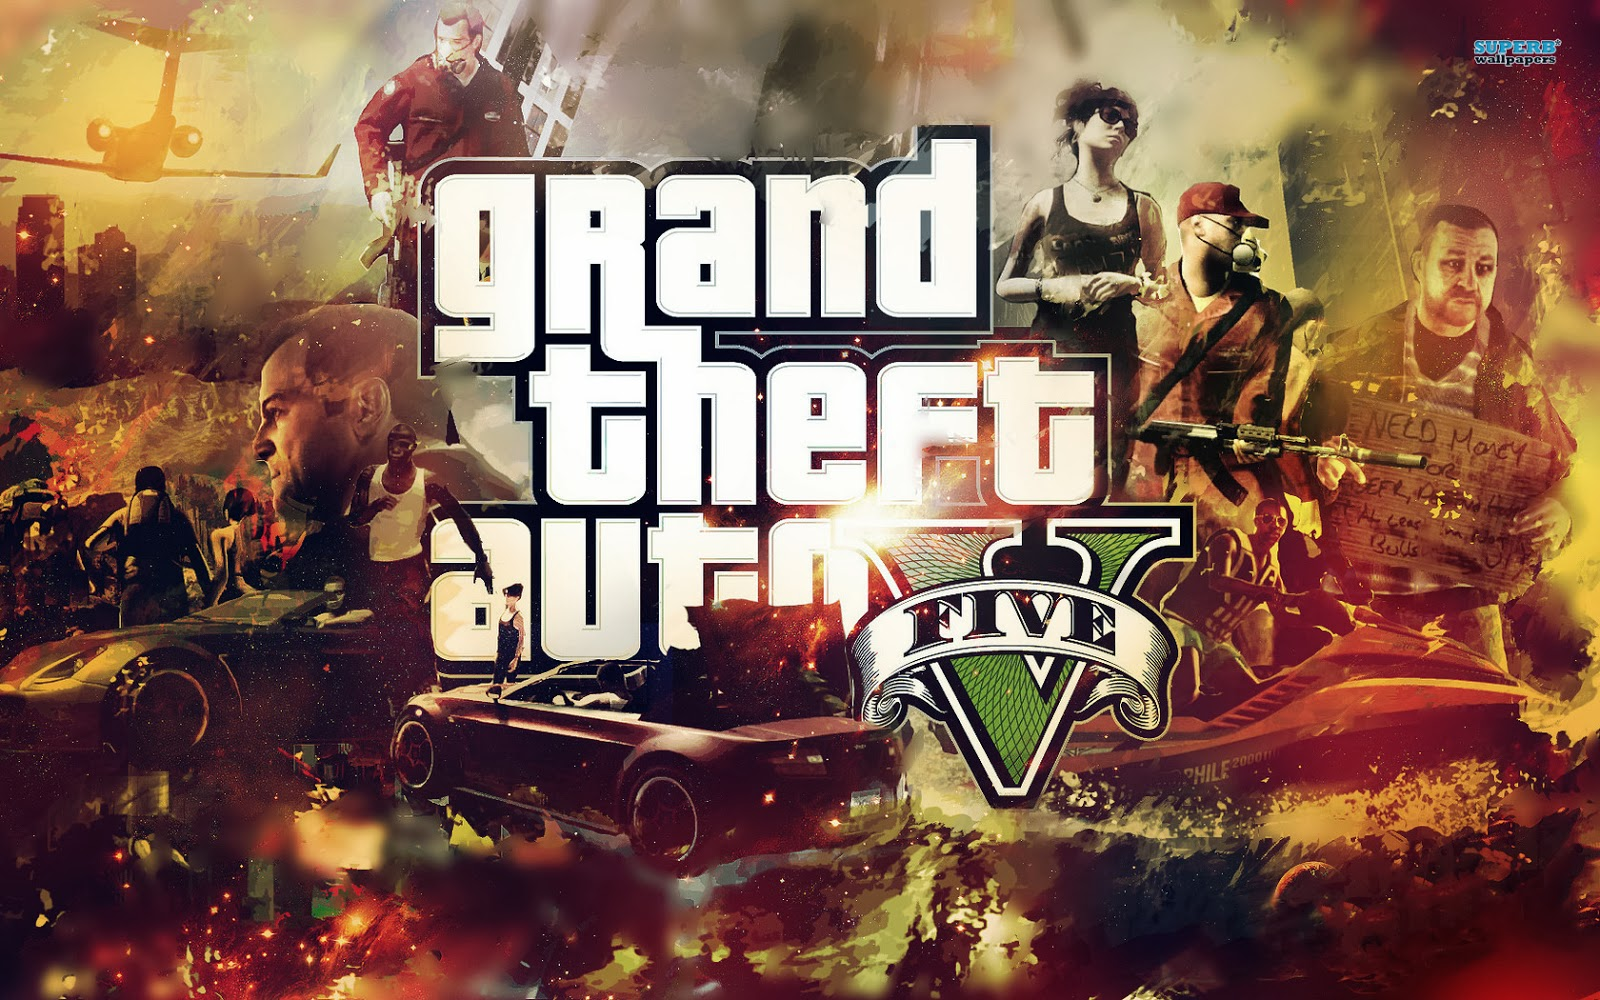 GTA V All Character Wallpaper | Game Pictures and Reviews